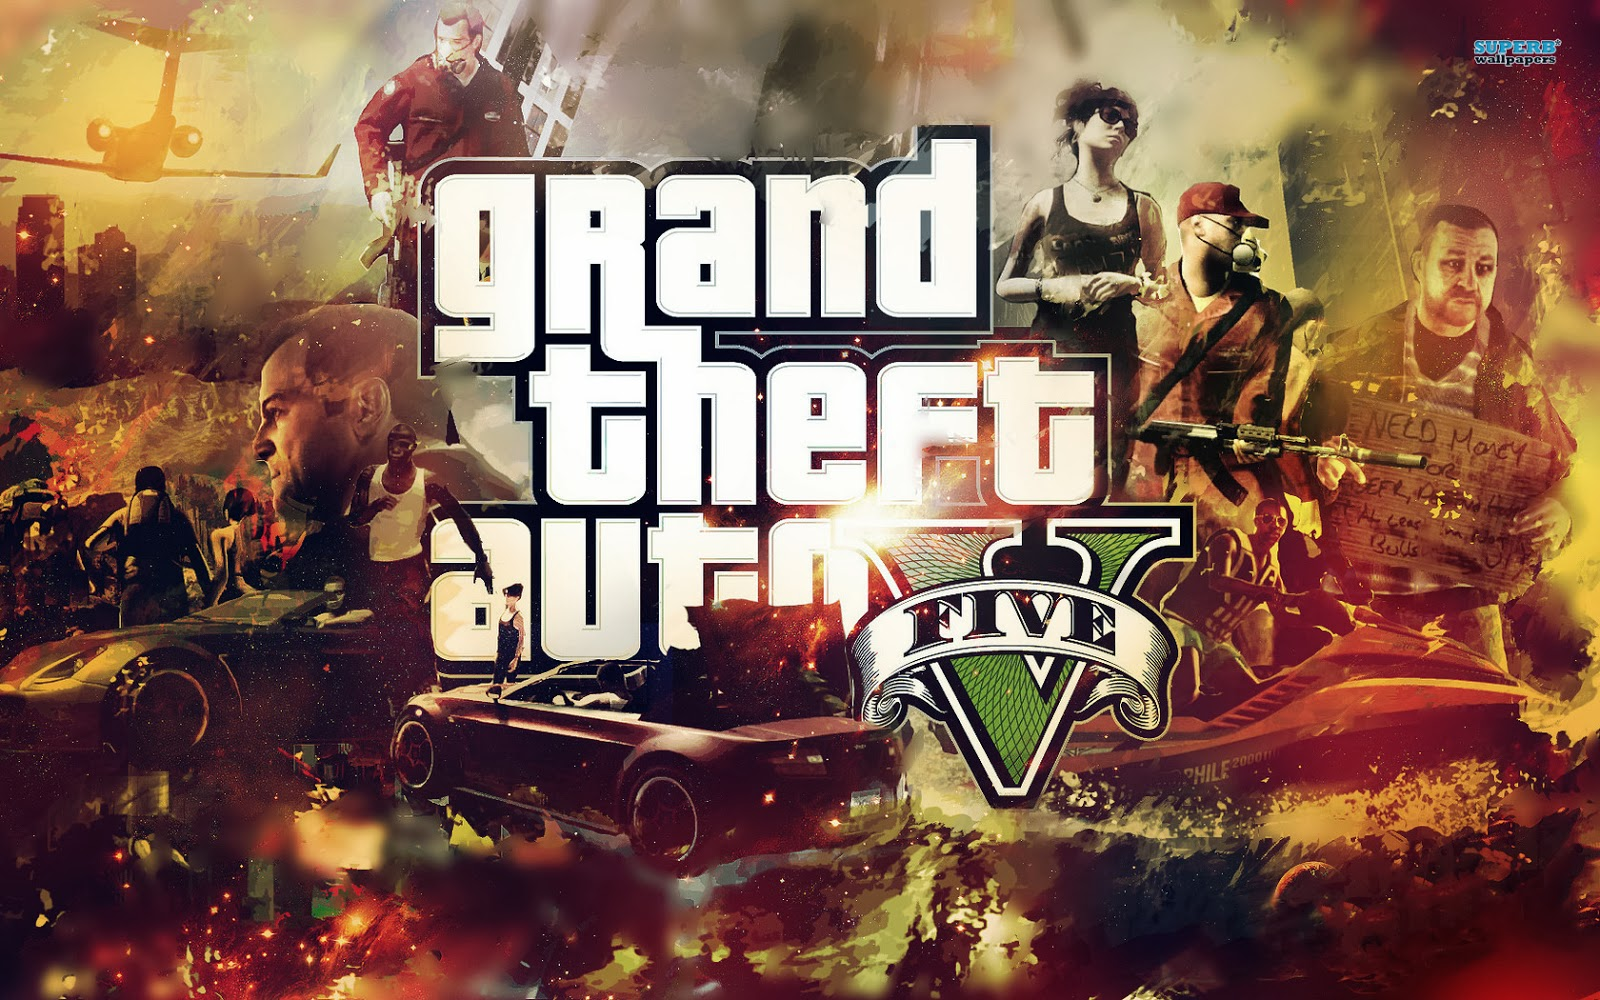 GTA V All Character Wallpaper | Game Pictures and Reviews